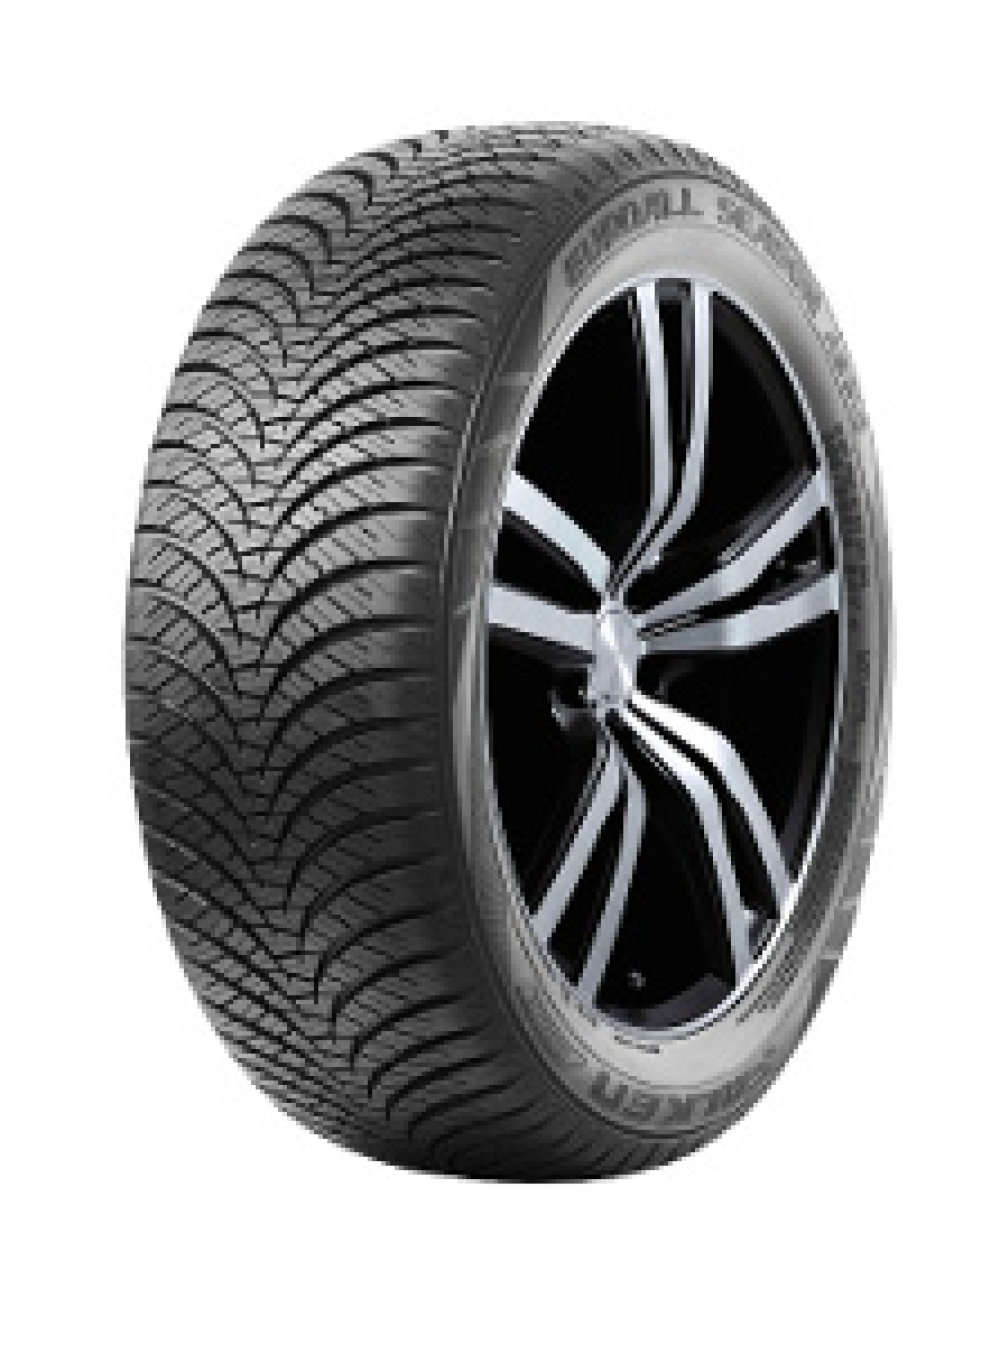 Image of Allwetterreifen 155/65 R14 75T Falken EUROALL SEASON AS210 M+S